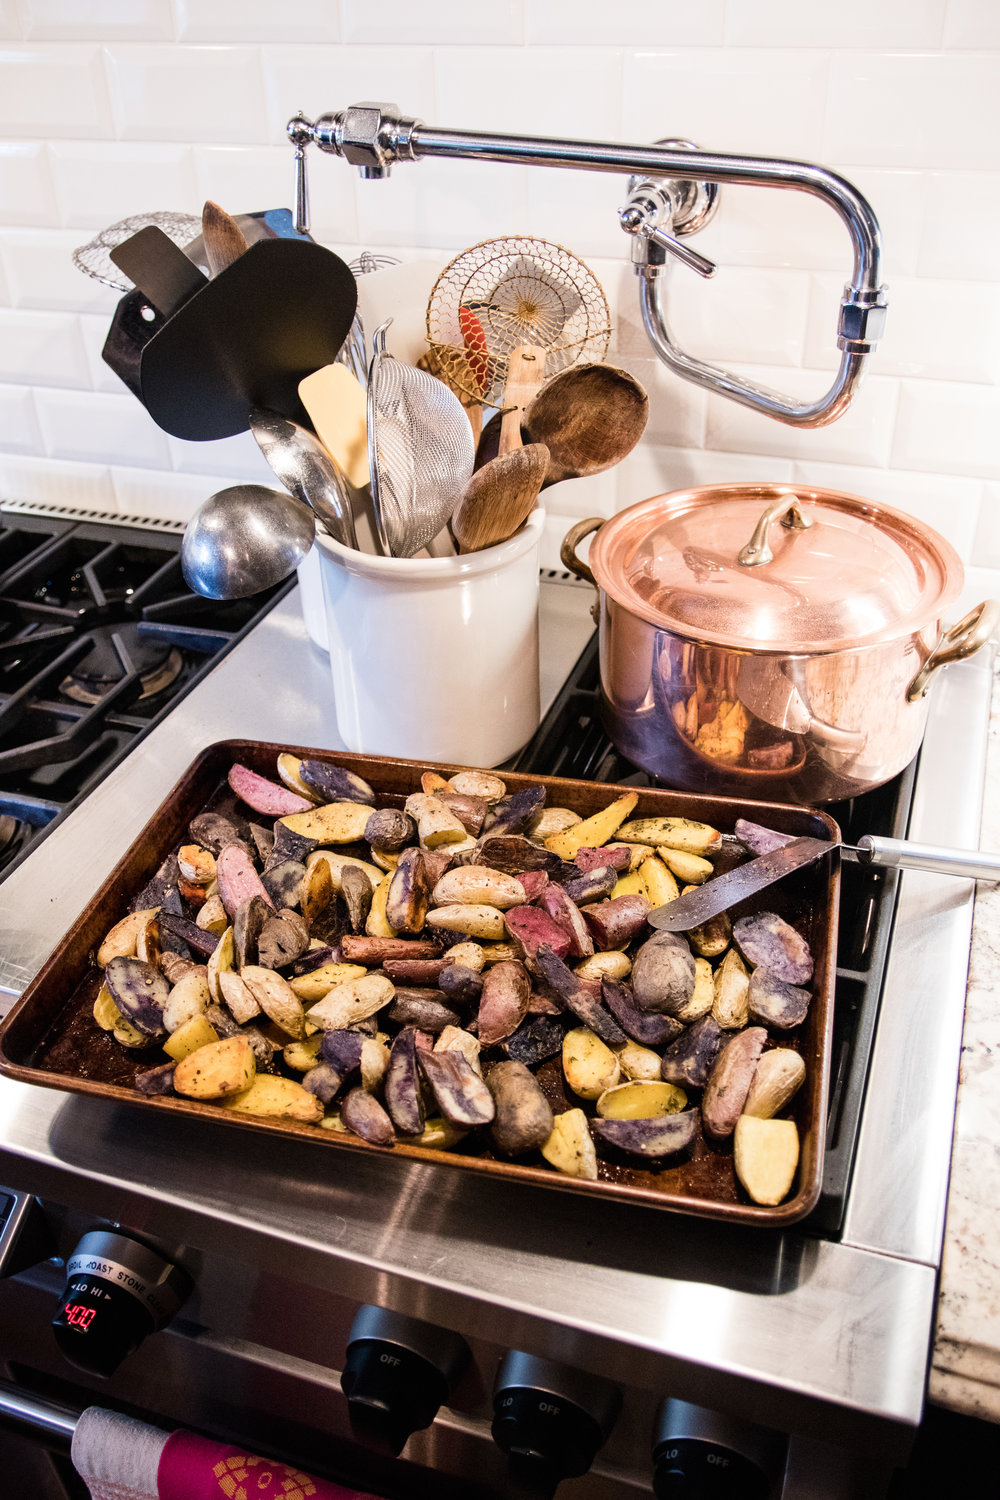 Roasted potatoes on the stove with my All-Clad copper pot